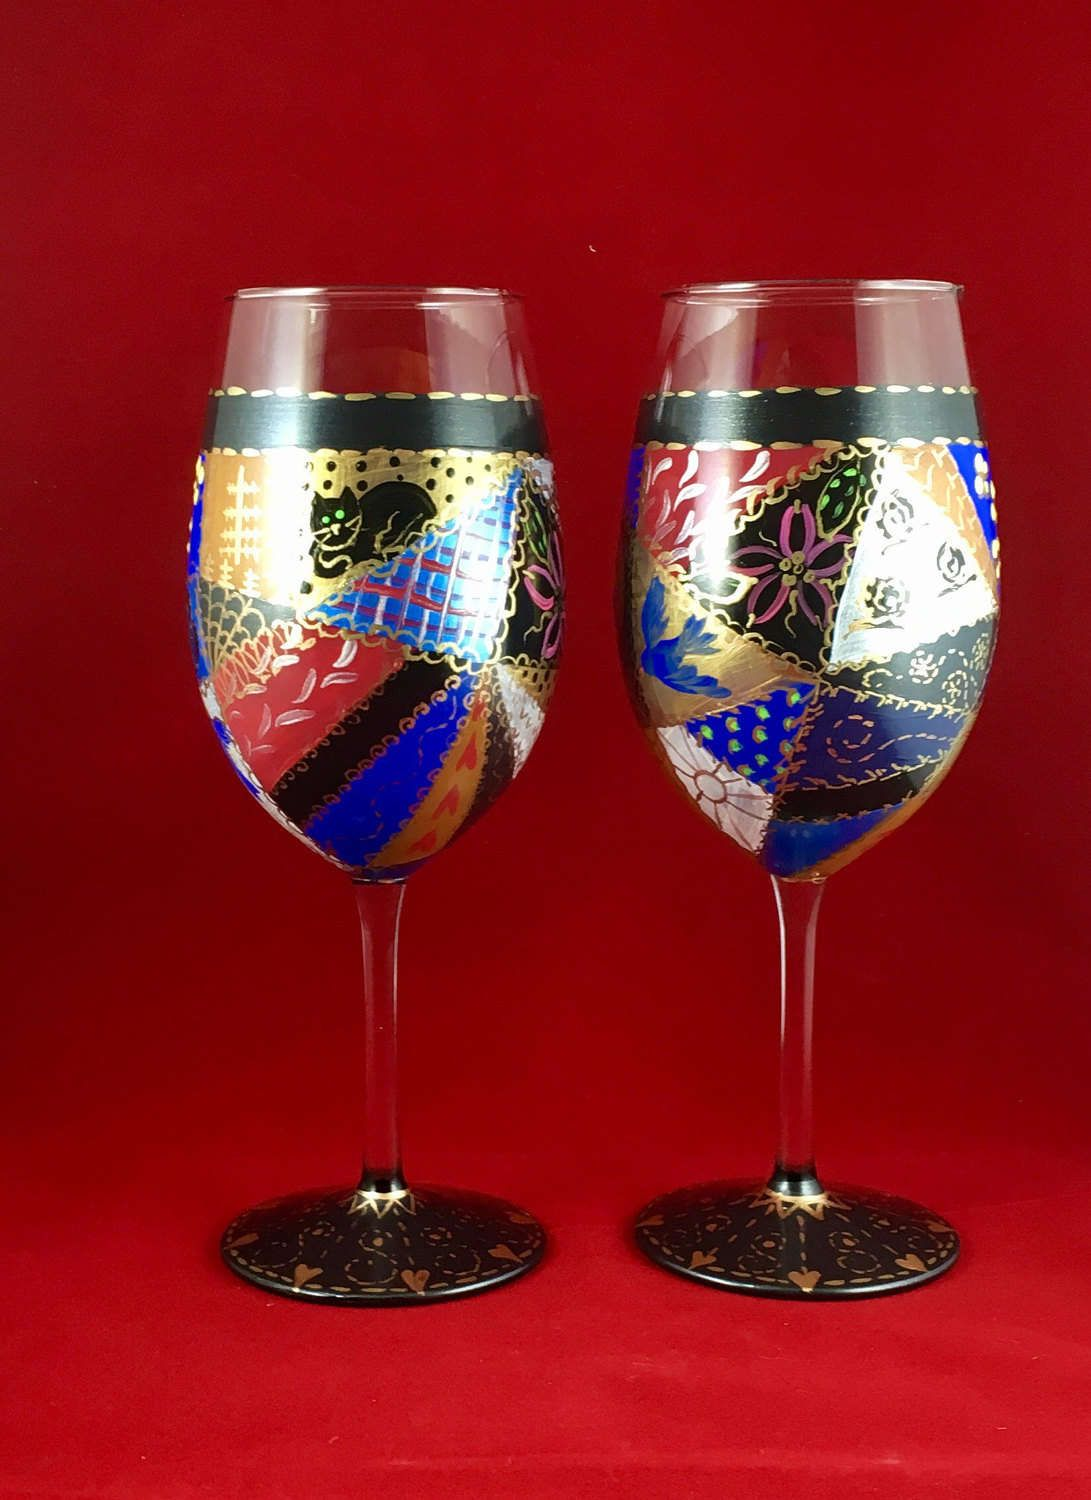 Crazy Quilt Wine Glasses Painted Quilt Cozy Set Of Two Vintage Look Boho Gift For Quilter Winter Wine G Diy Glasses Crazy Quilts Boho Gifts